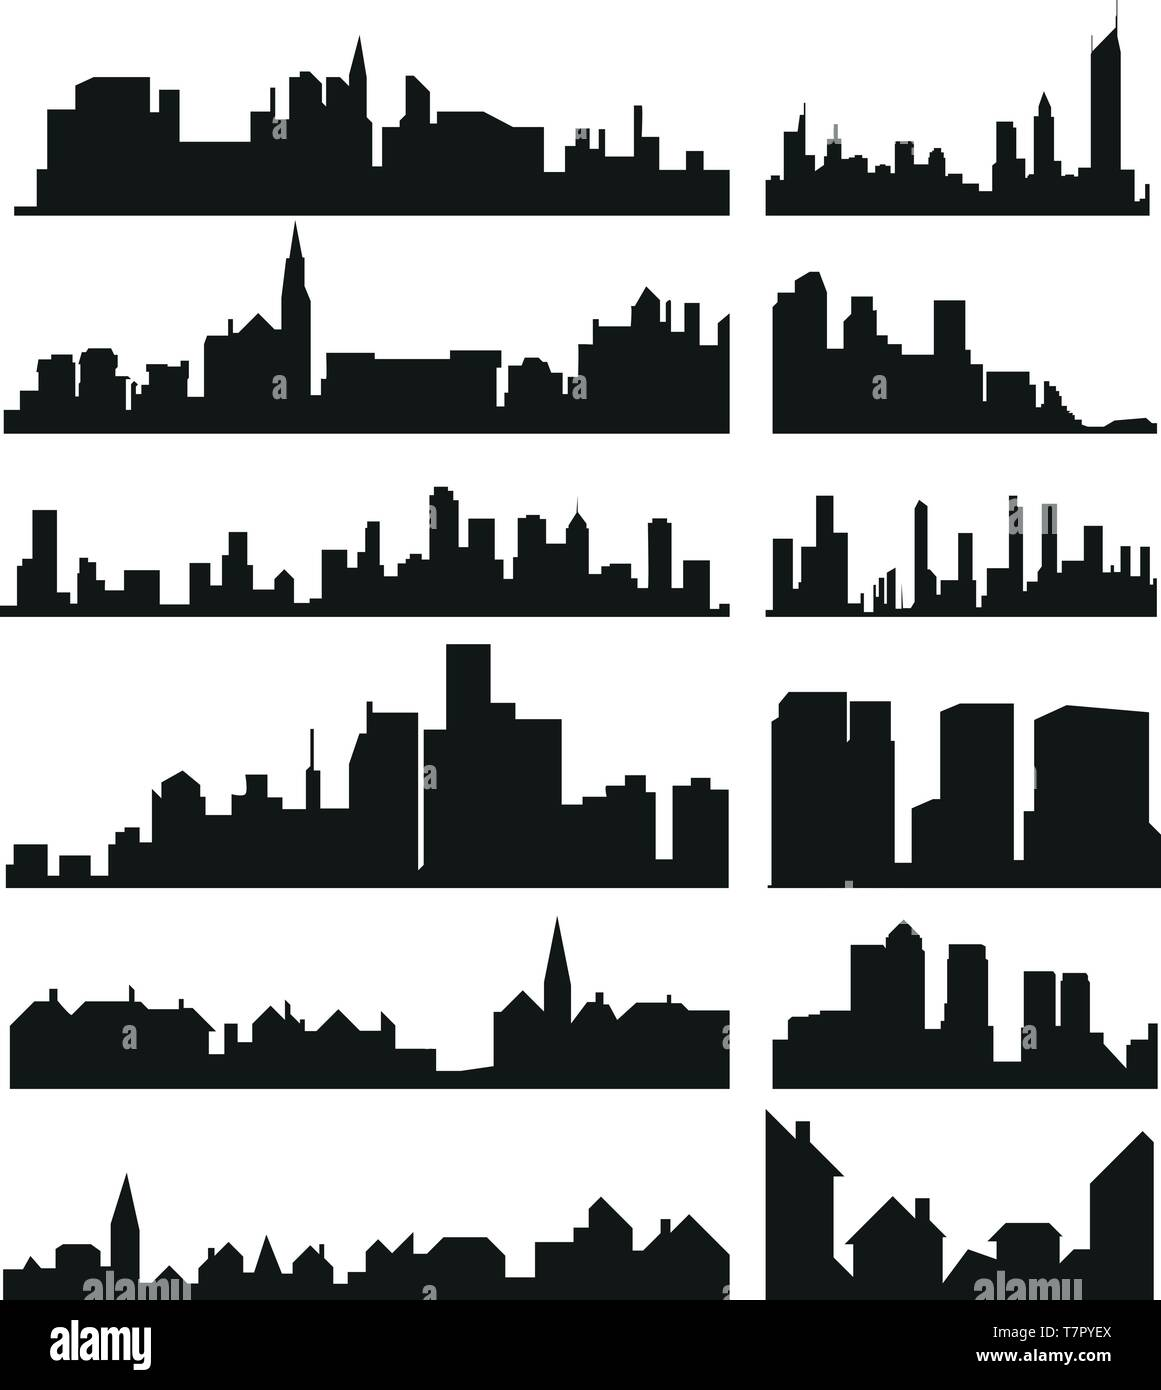 Skylines icons set - Stock Vector